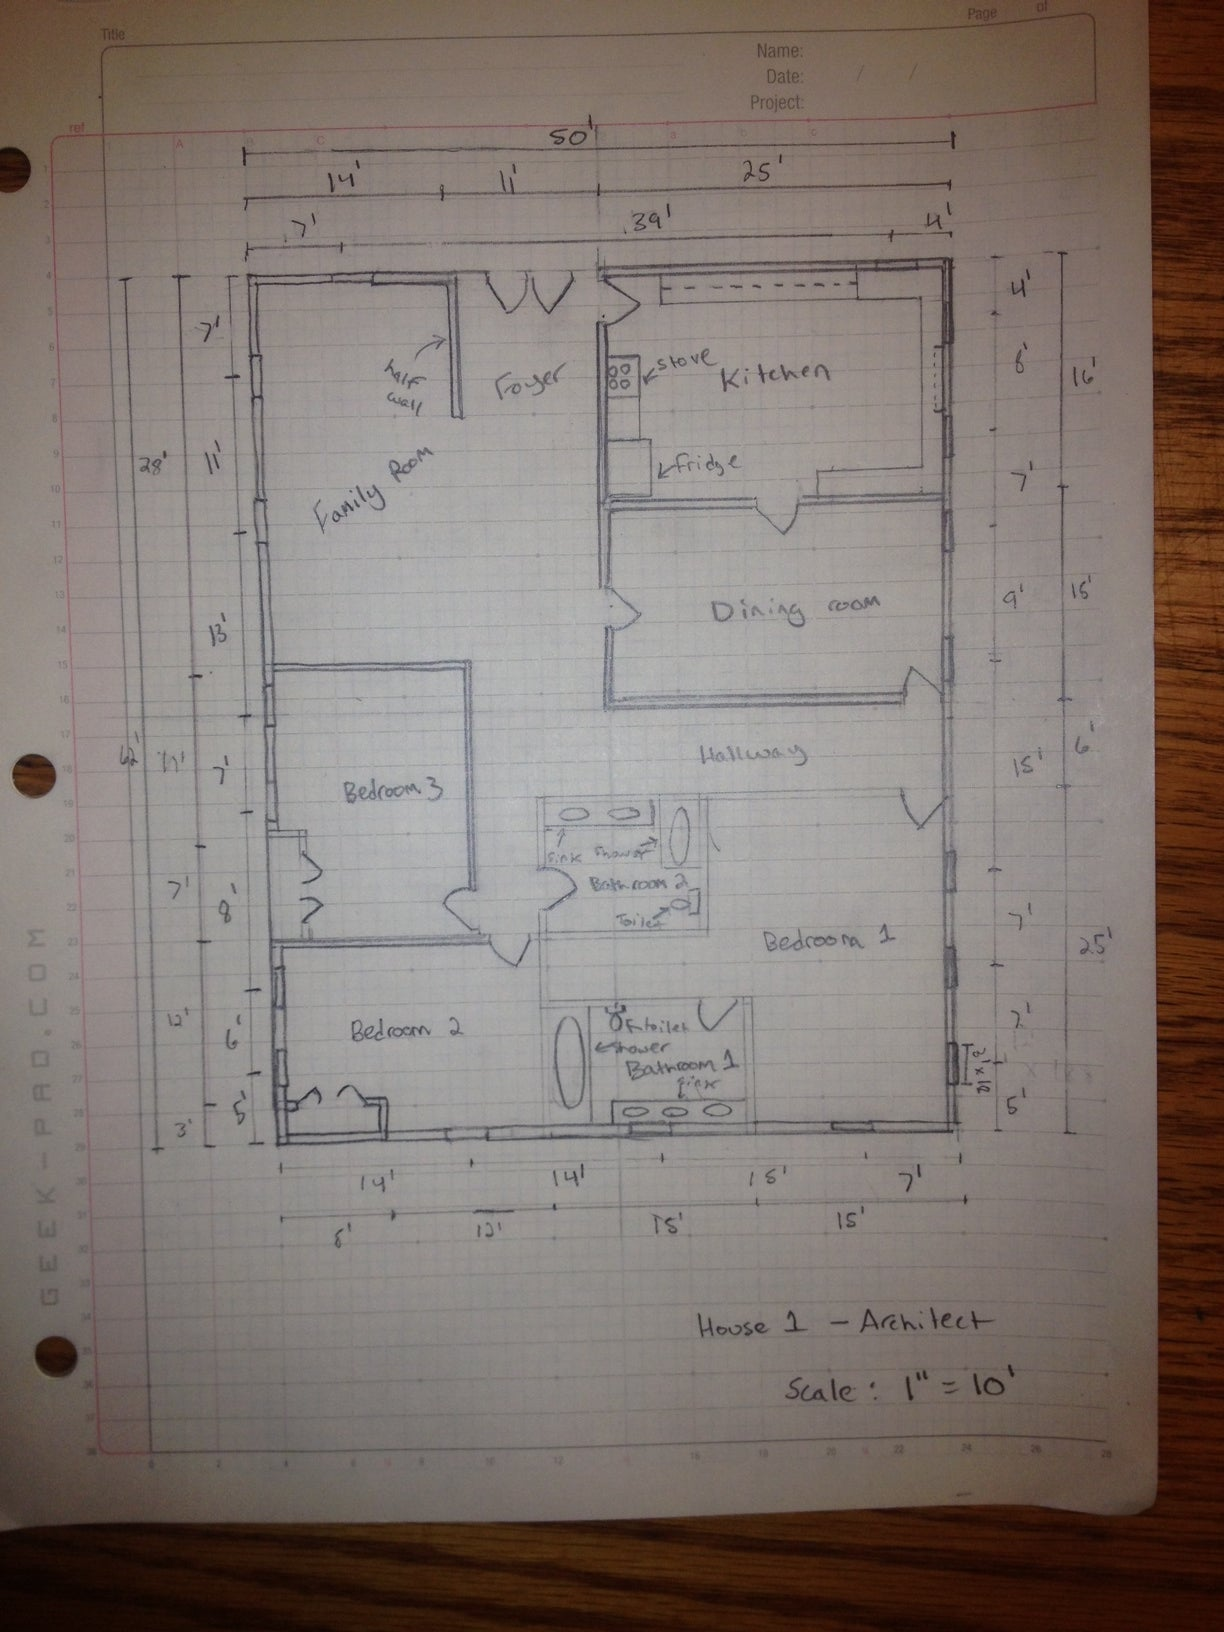 How To Manually Draft A Basic Floor Plan 11 Steps Instructables